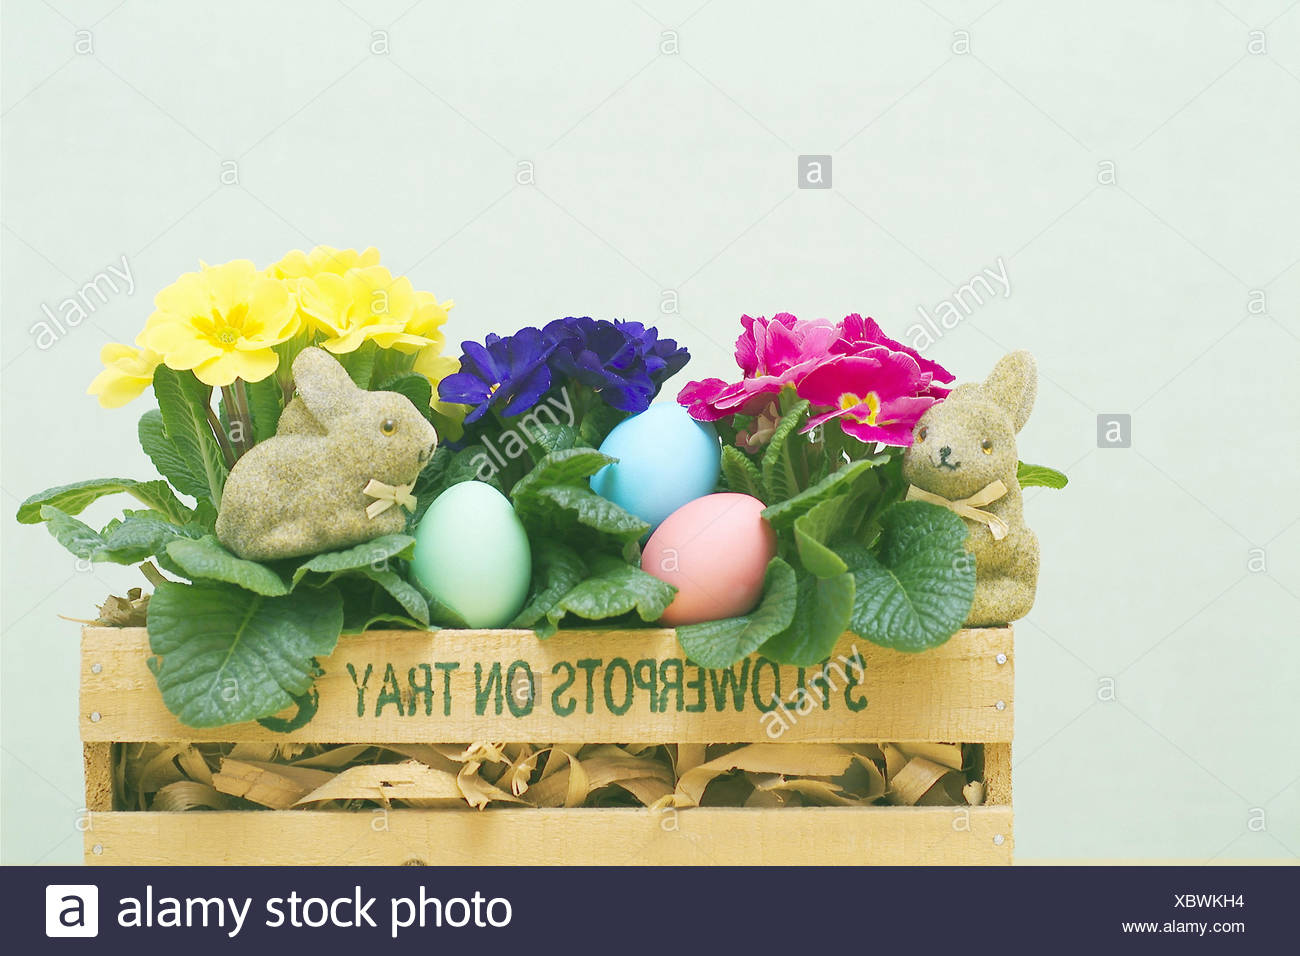 Wooden Box Primroses Easter Eggs Hares Figures Curled Flower